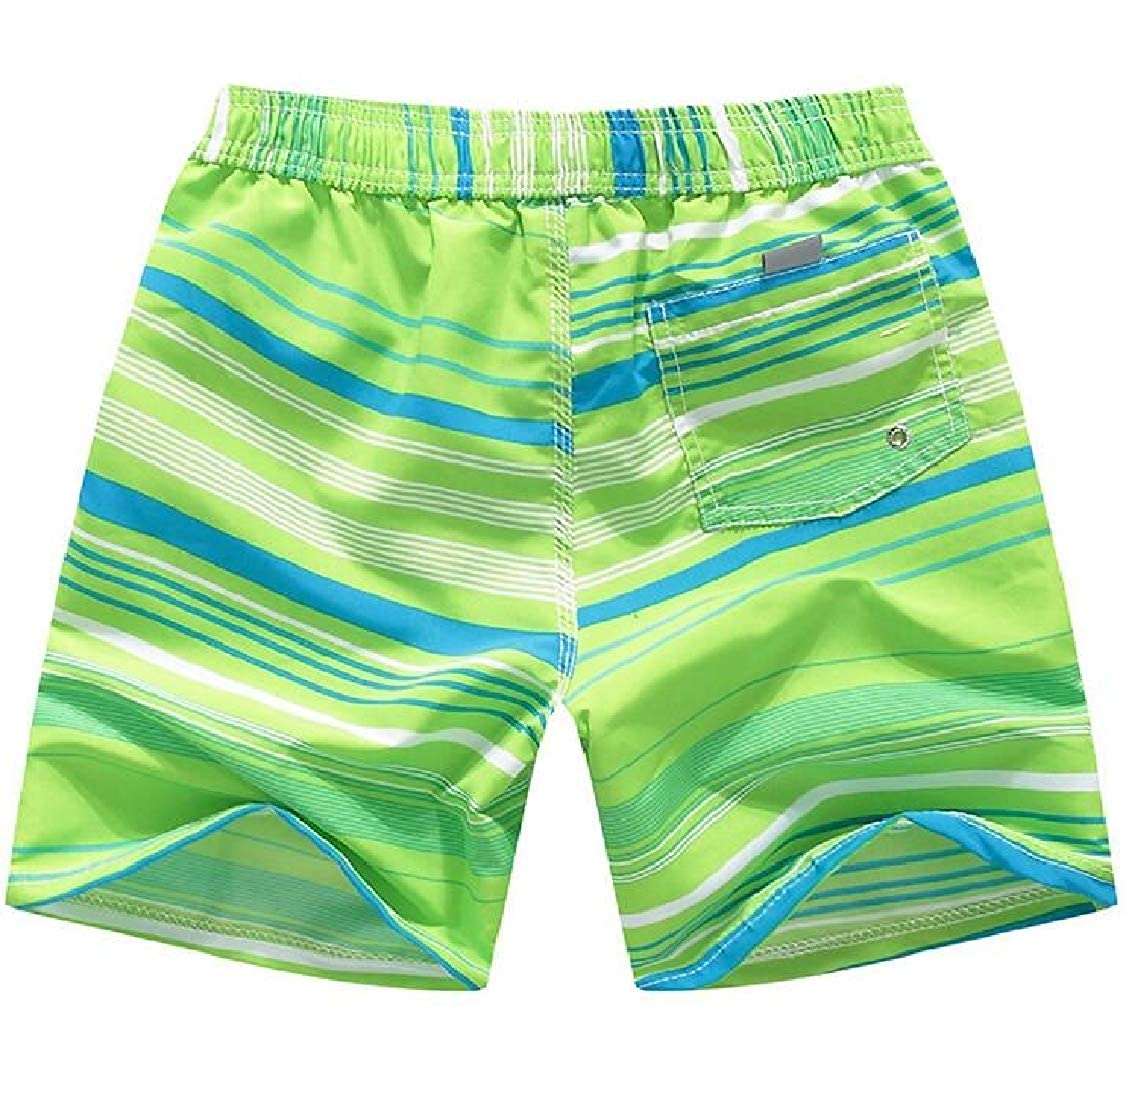 Lutratocro Boys Summer Multicolor Holiday Cool Dry Striped Beachwear Short Pants